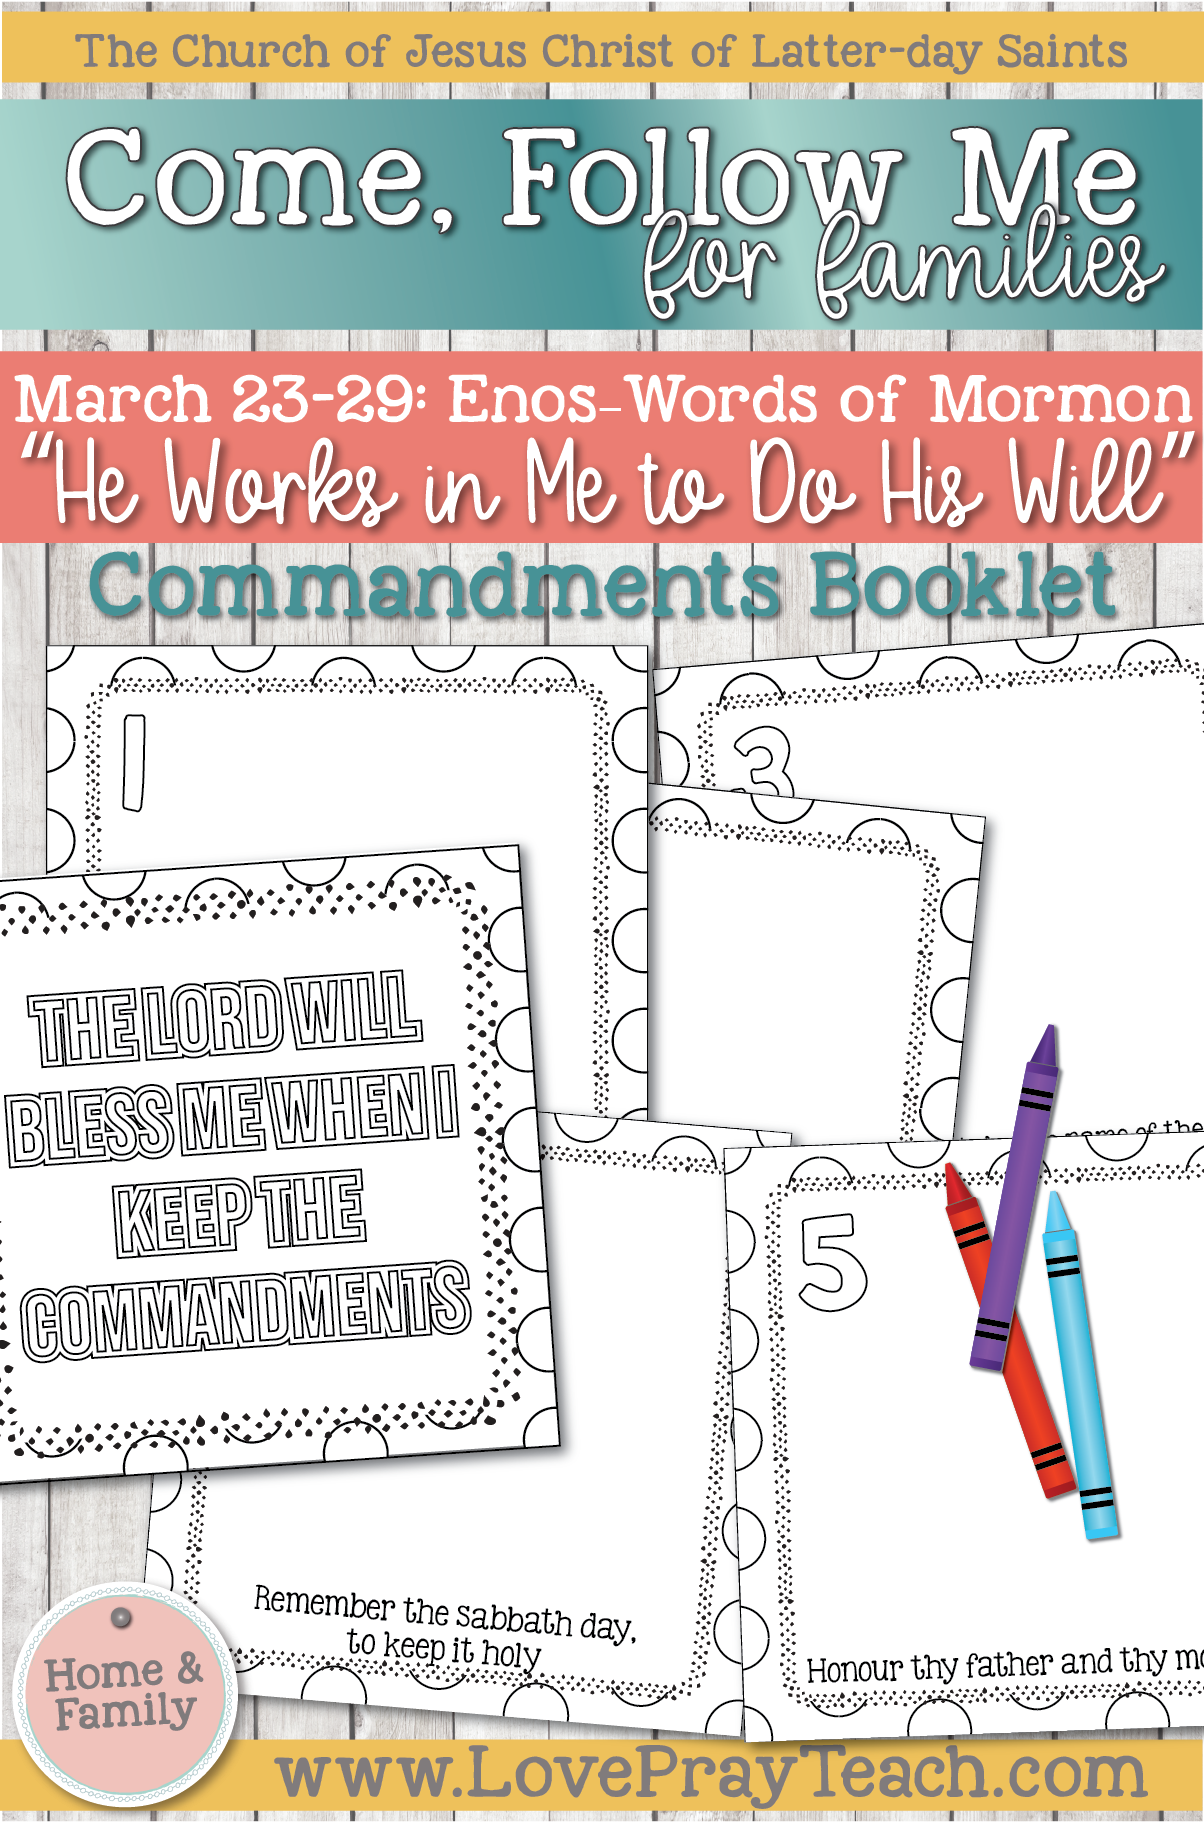 """Book of Mormon 2020 - March Week 5 - March 23–29 Enos–Words of Mormon """"He Works in Me to Do His Will"""""""